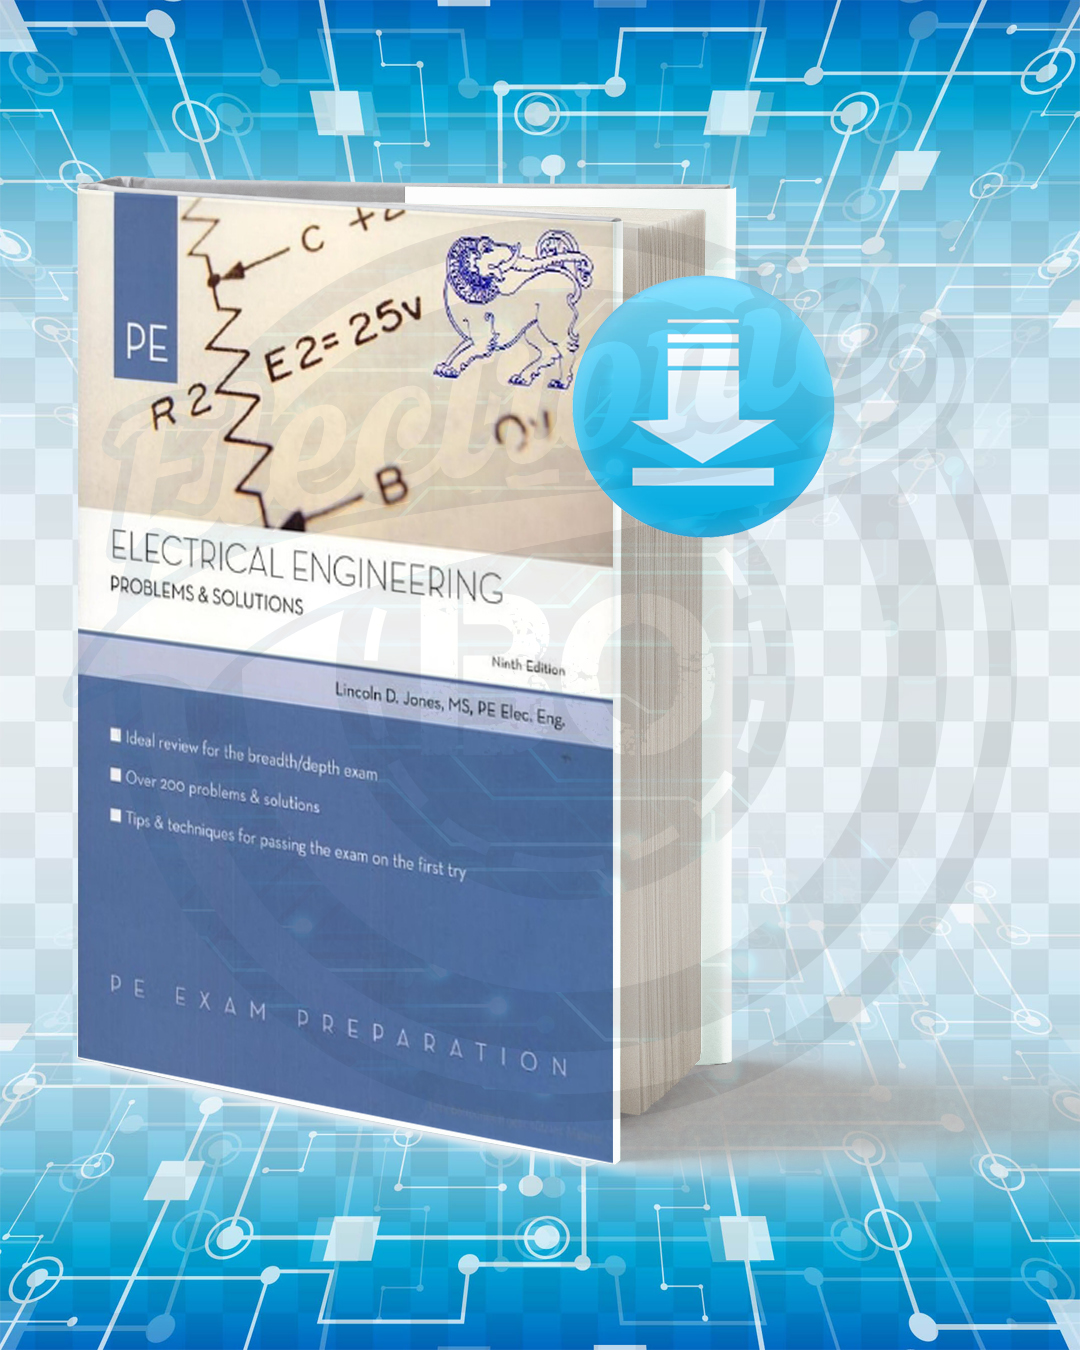 electrical engineering problems  solutions  electronic bo